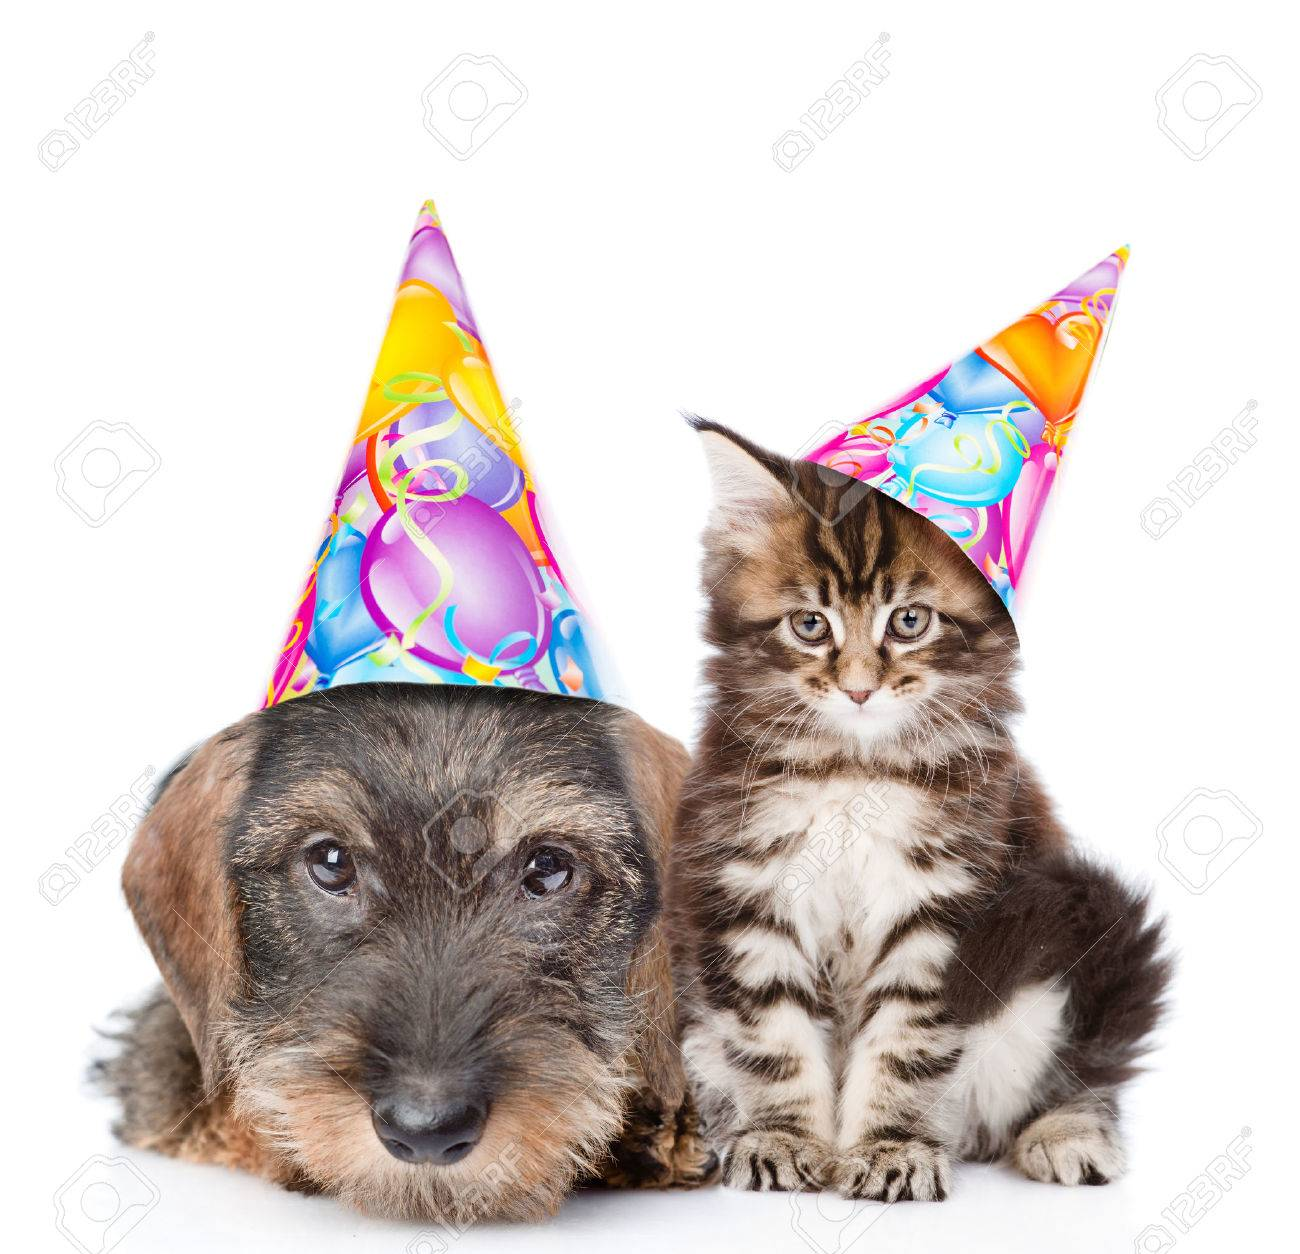 Cat And Dog In Birthday Hats Looking At Camera Together Isolated On White Background